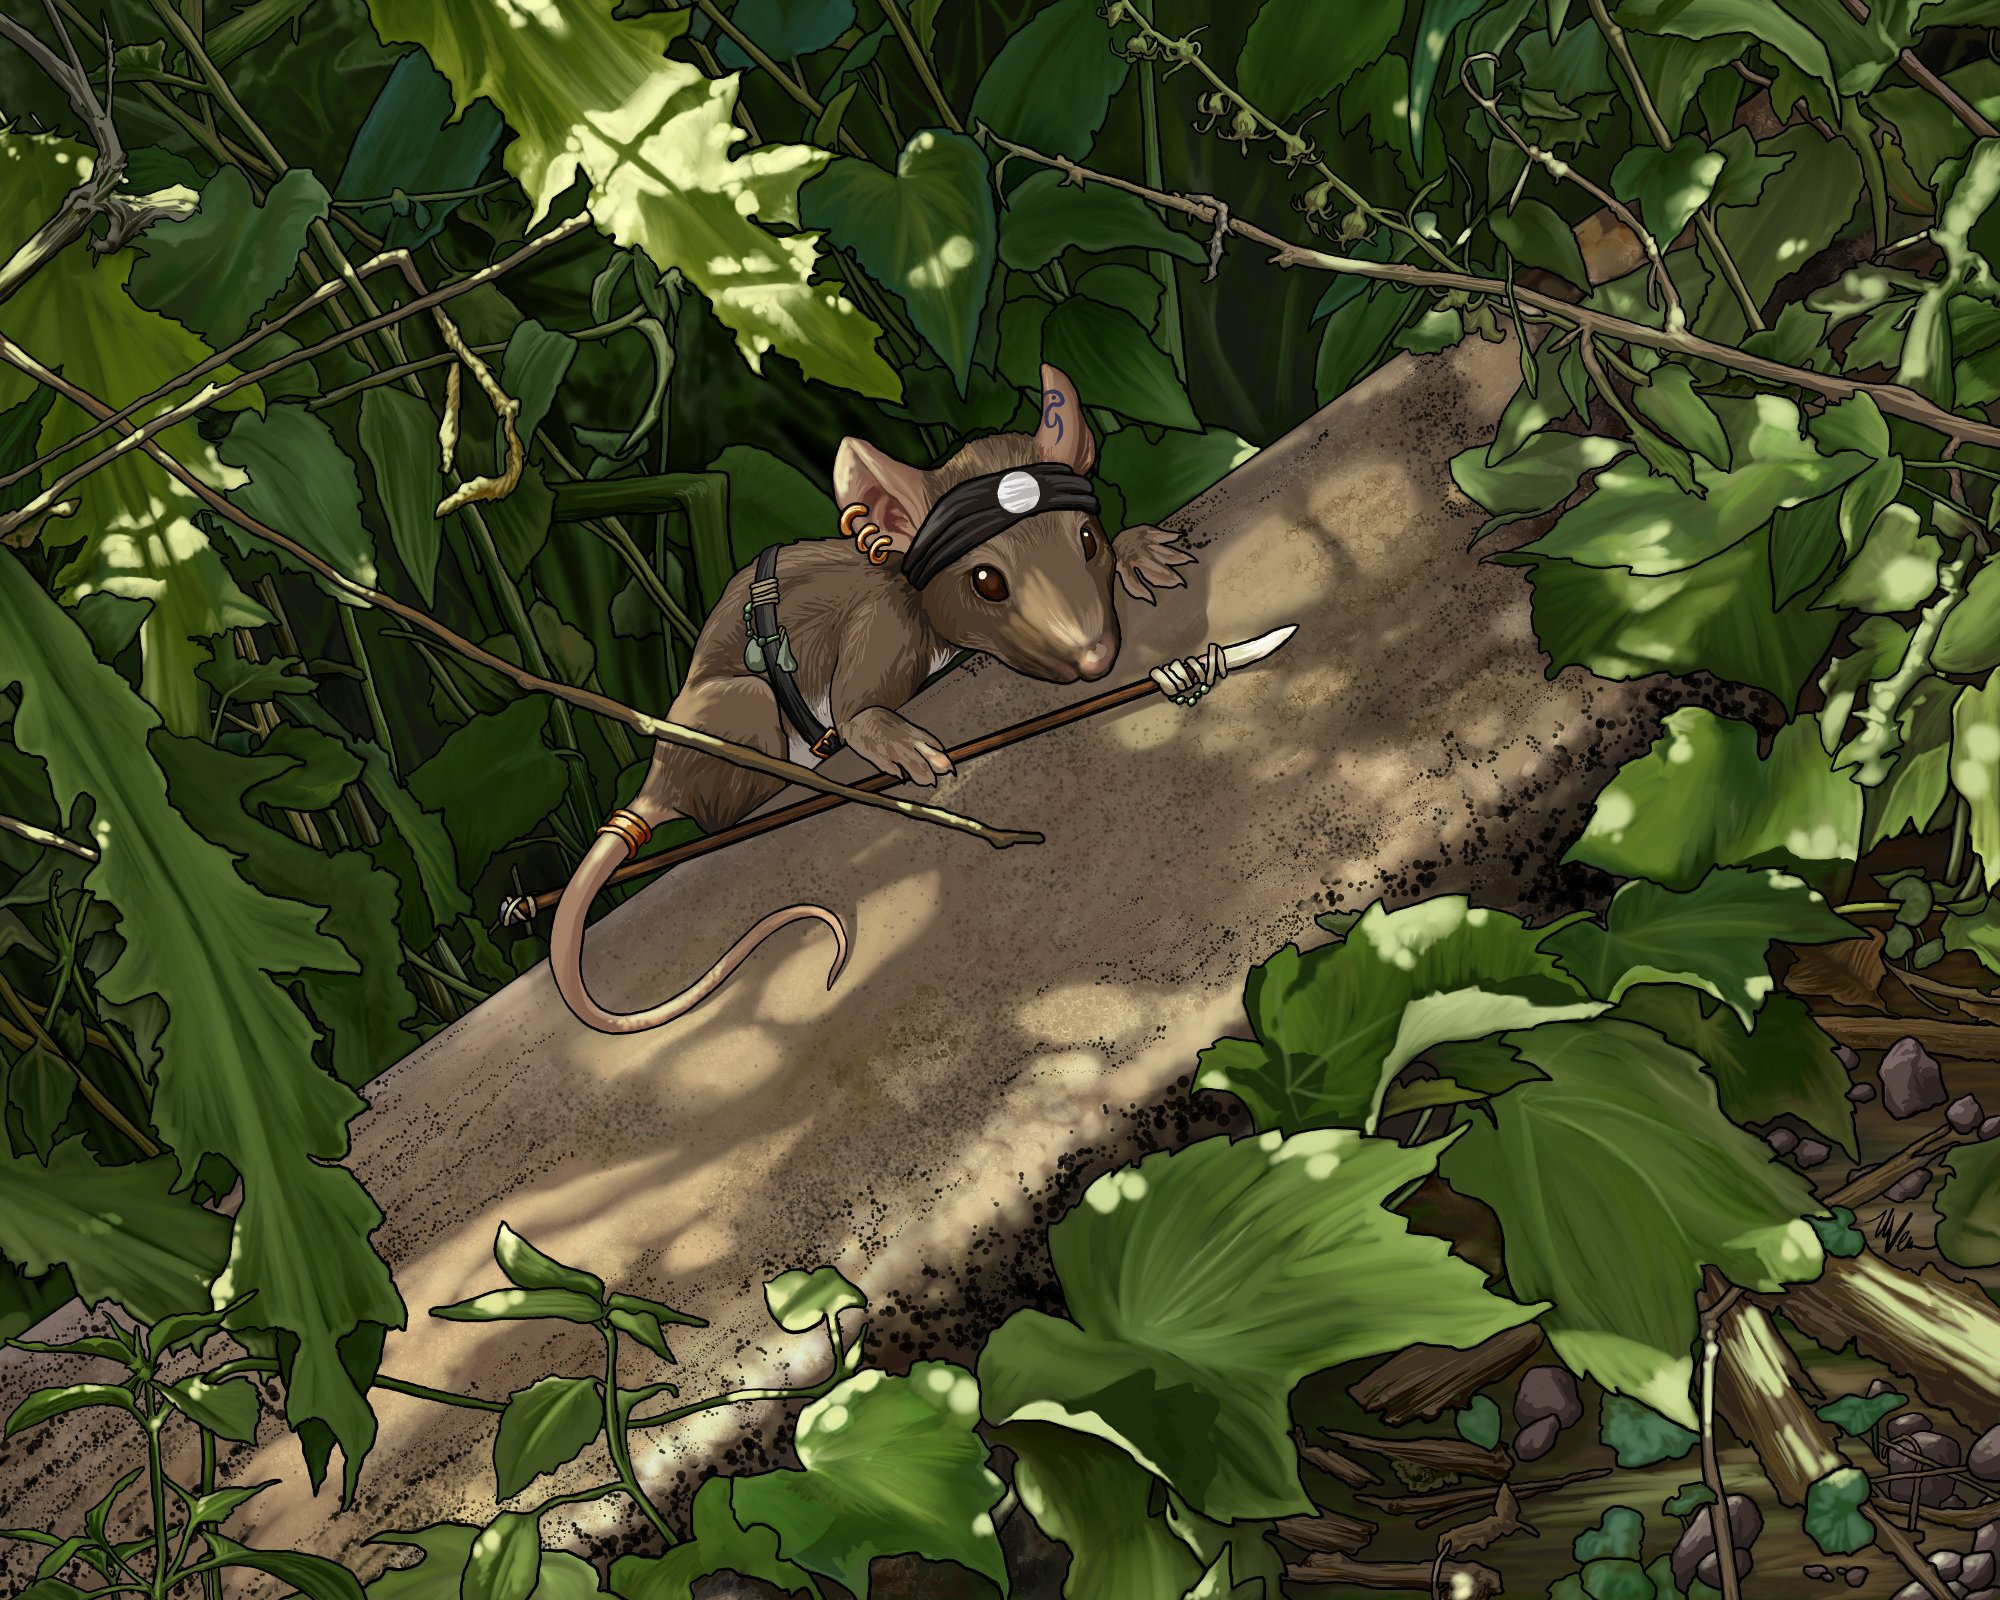 Comic illustration of mouse holding spear in tree